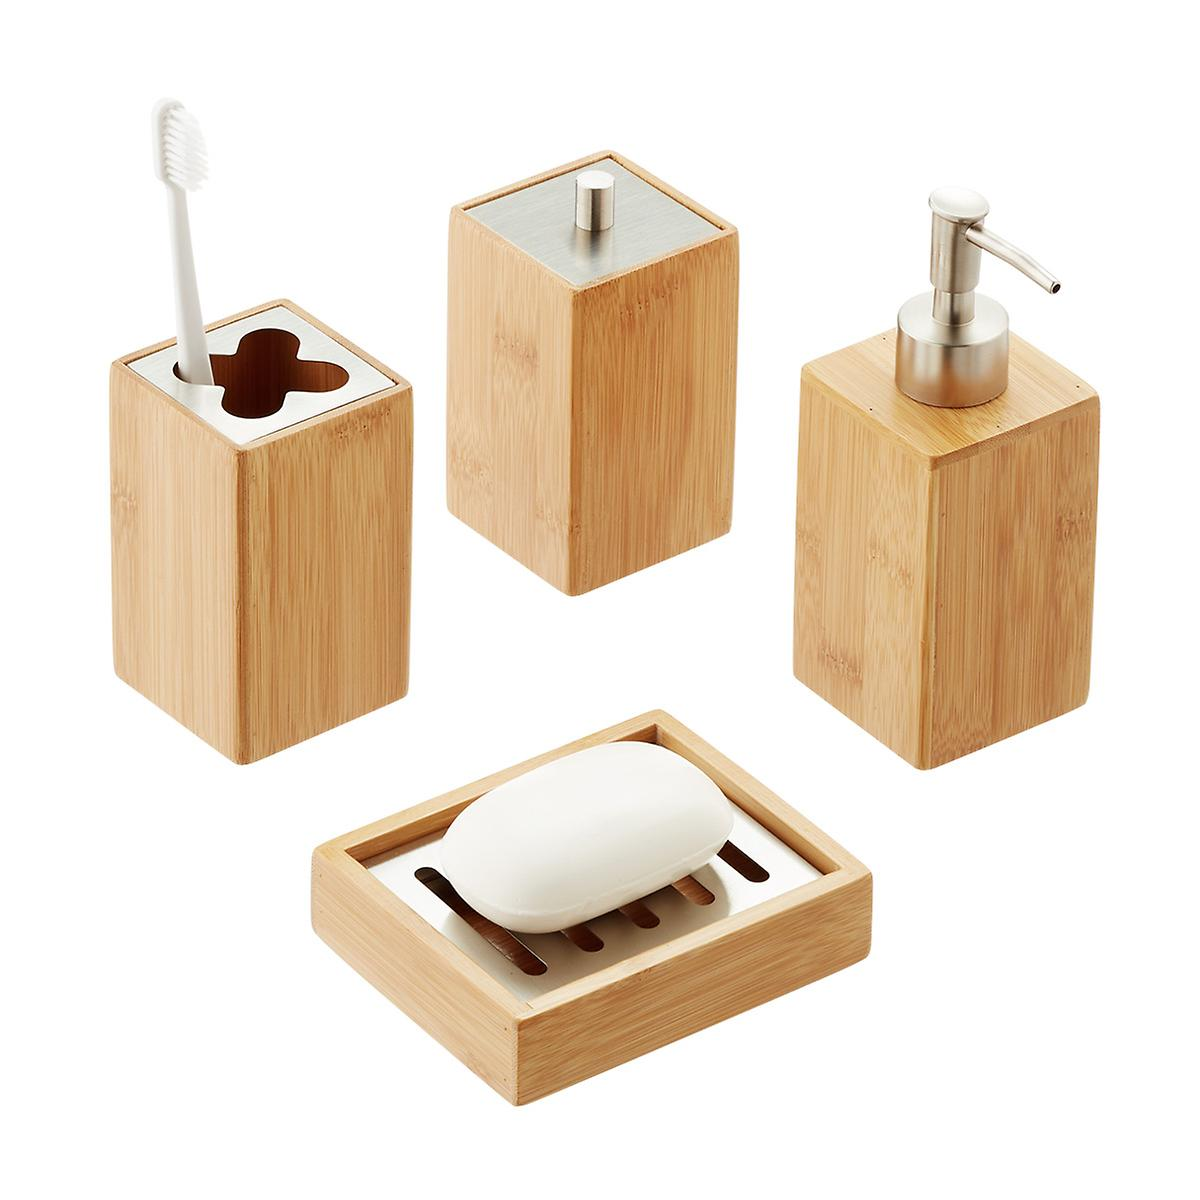 Bamboo Countertop Bathroom Set | The Container Store